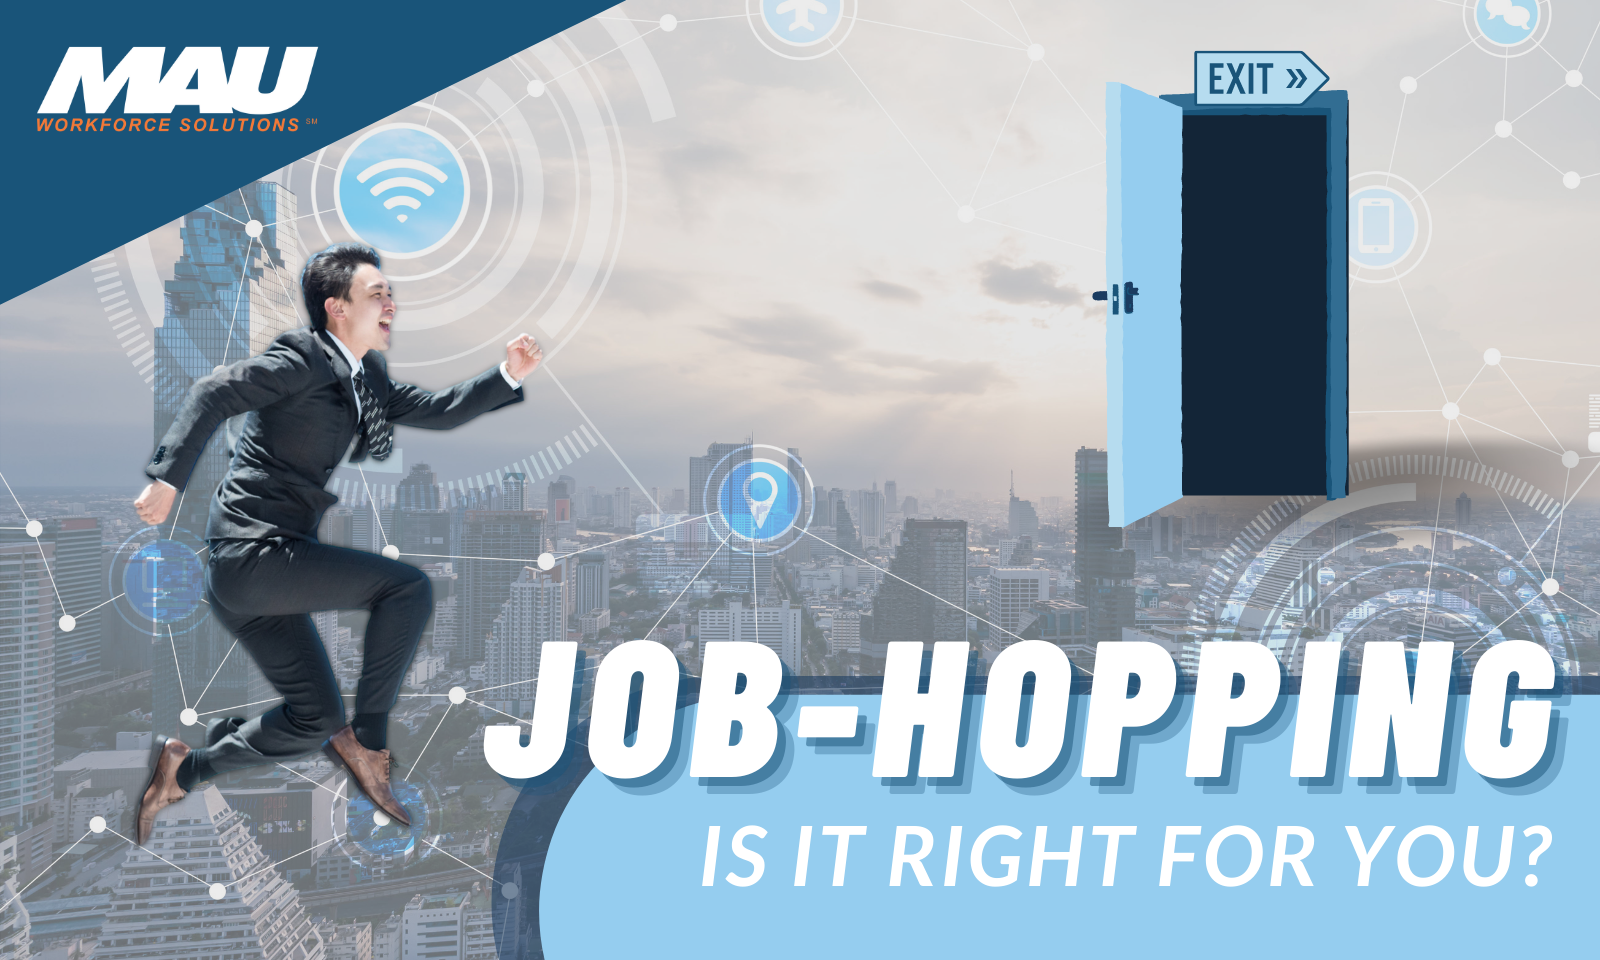 Job-hopping: Is it right for you?